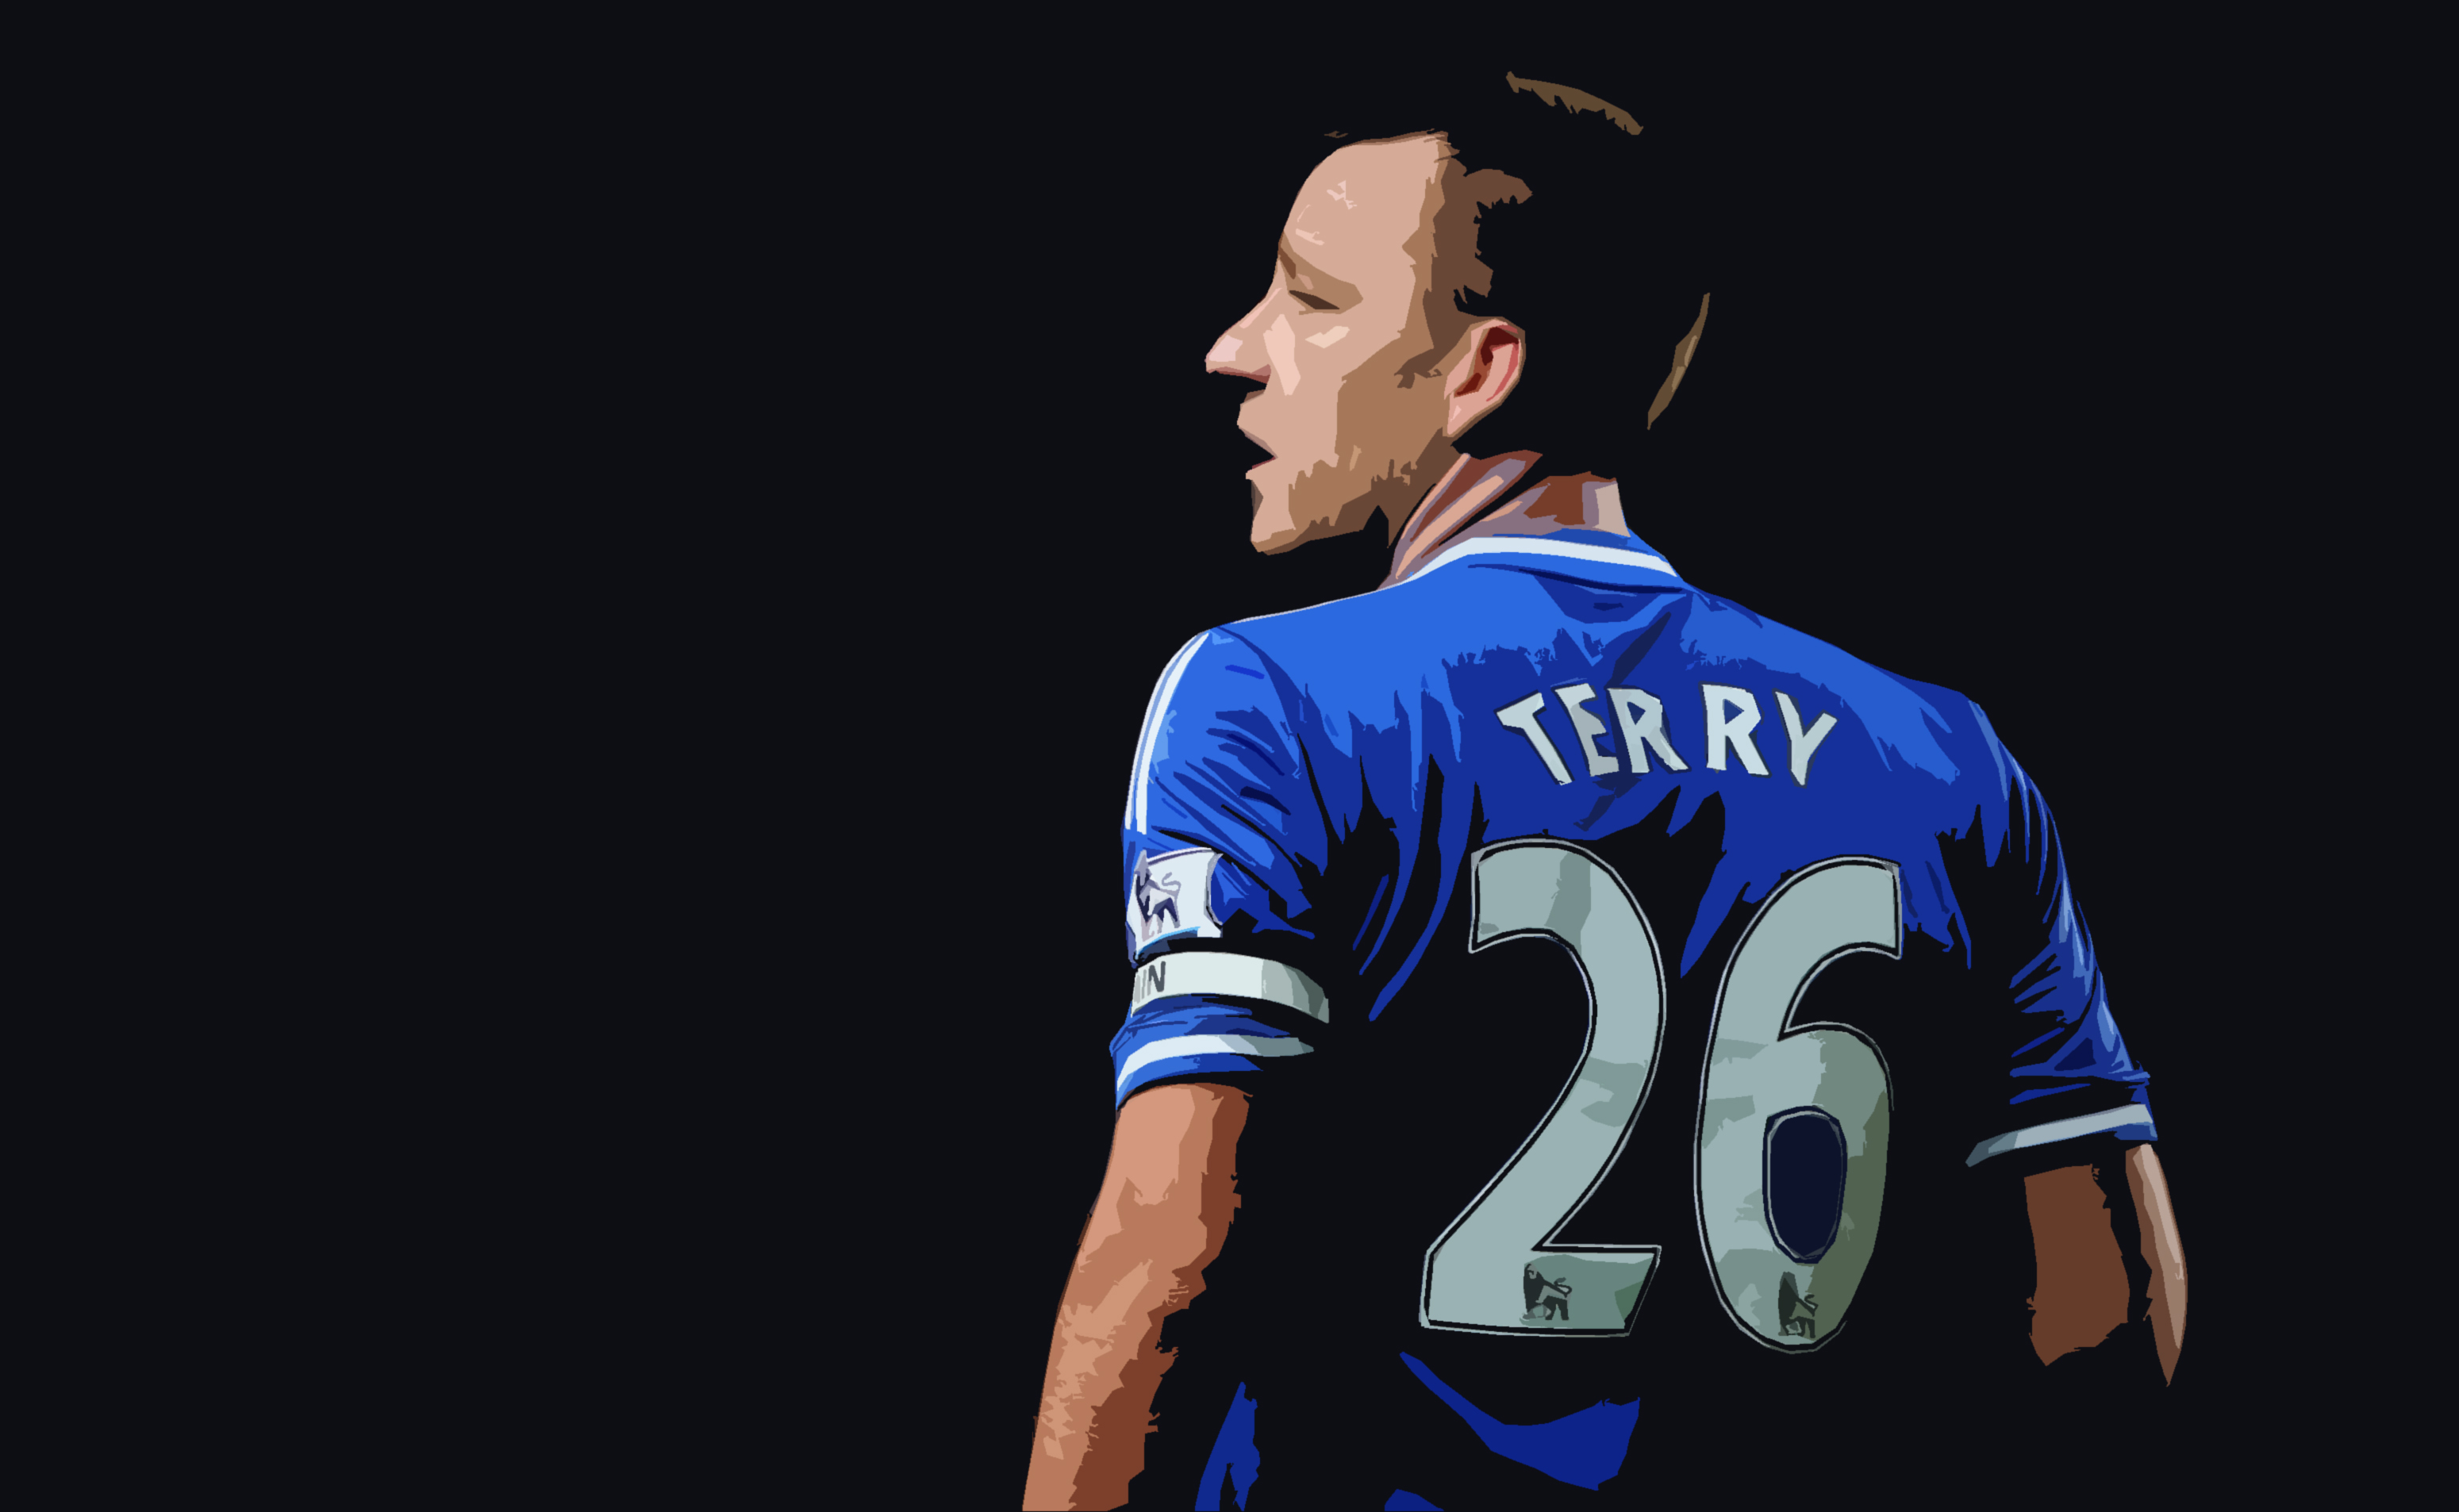 John Terry Will Leave Chelsea At The End Of Current Season